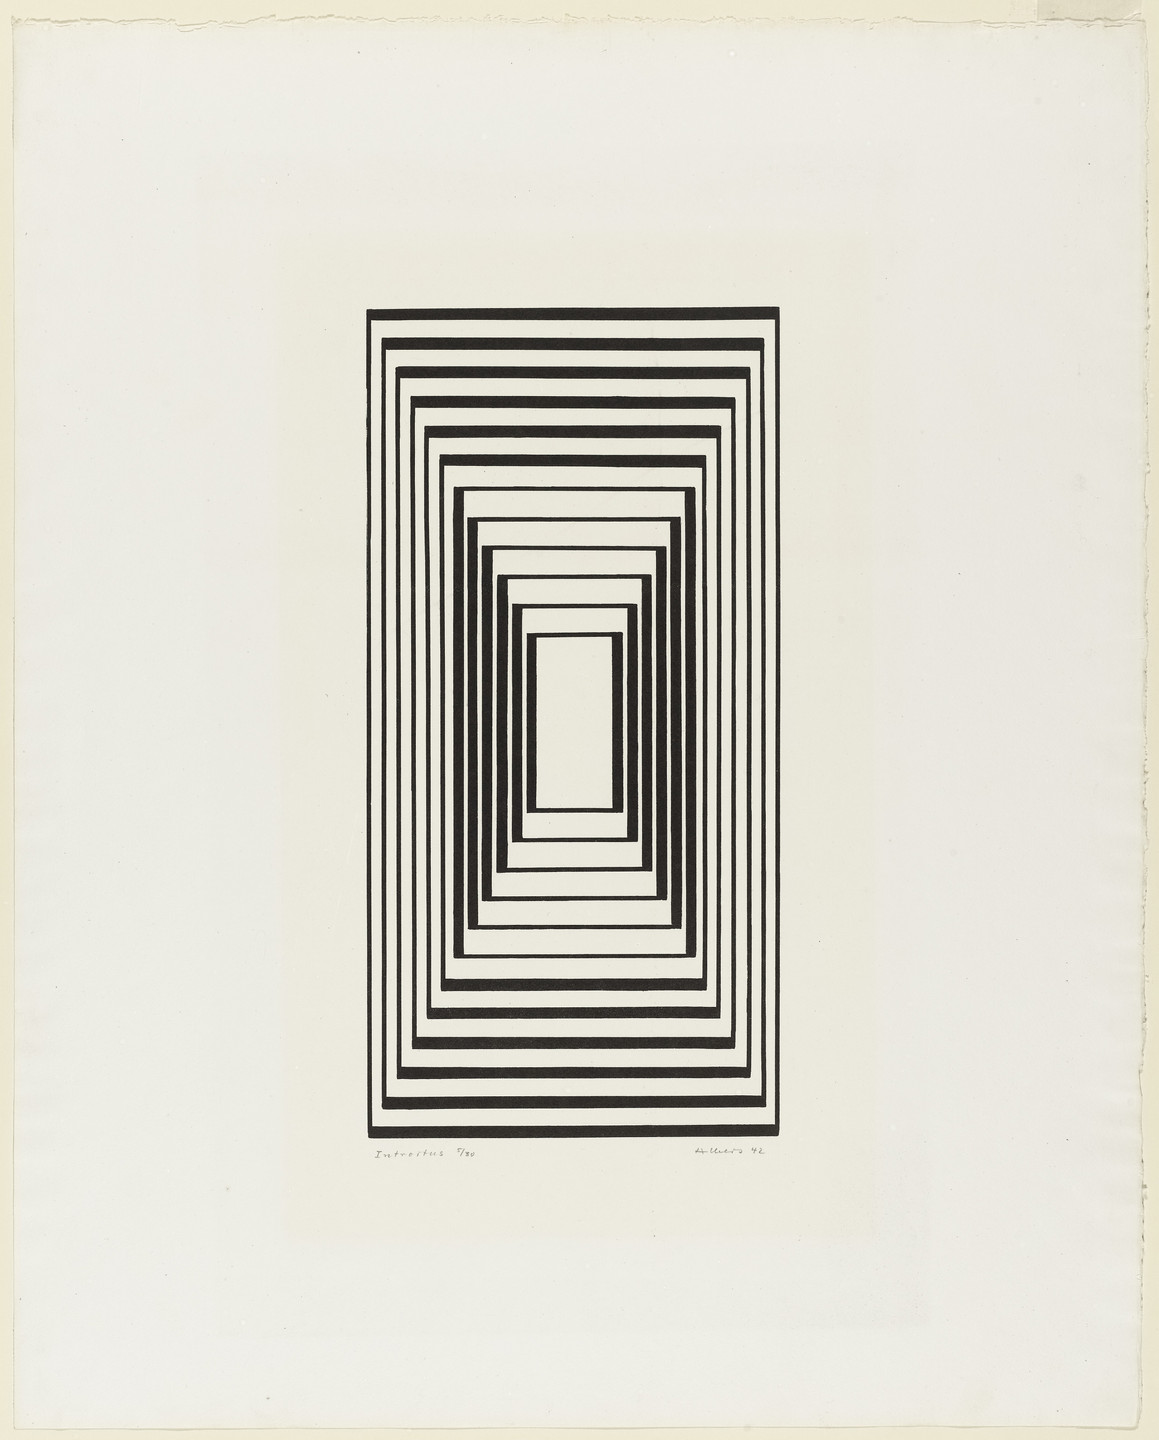 Josef Albers. Introitus (Dedication) from the series Graphic Tectonic. 1942